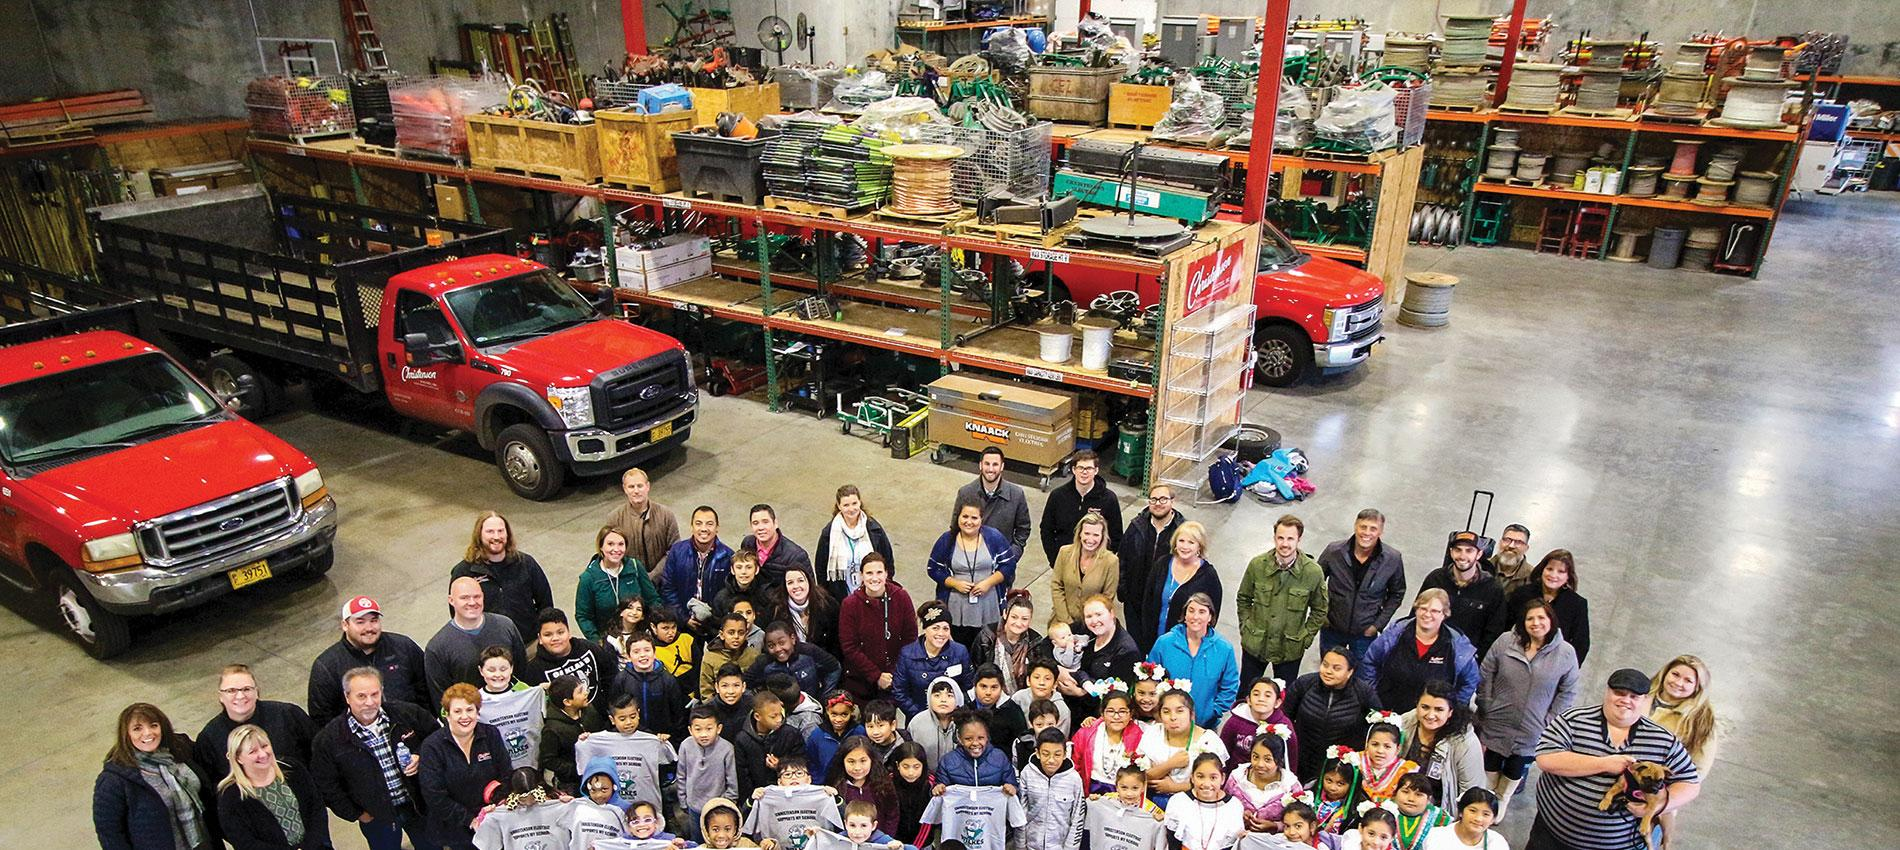 In Portland, Ore., team members from Christenson Electric pose with students from Wilkes Elementary School, a local institution they have supported with food, toys and daily-use items. Photo Credit: Christenson Electric